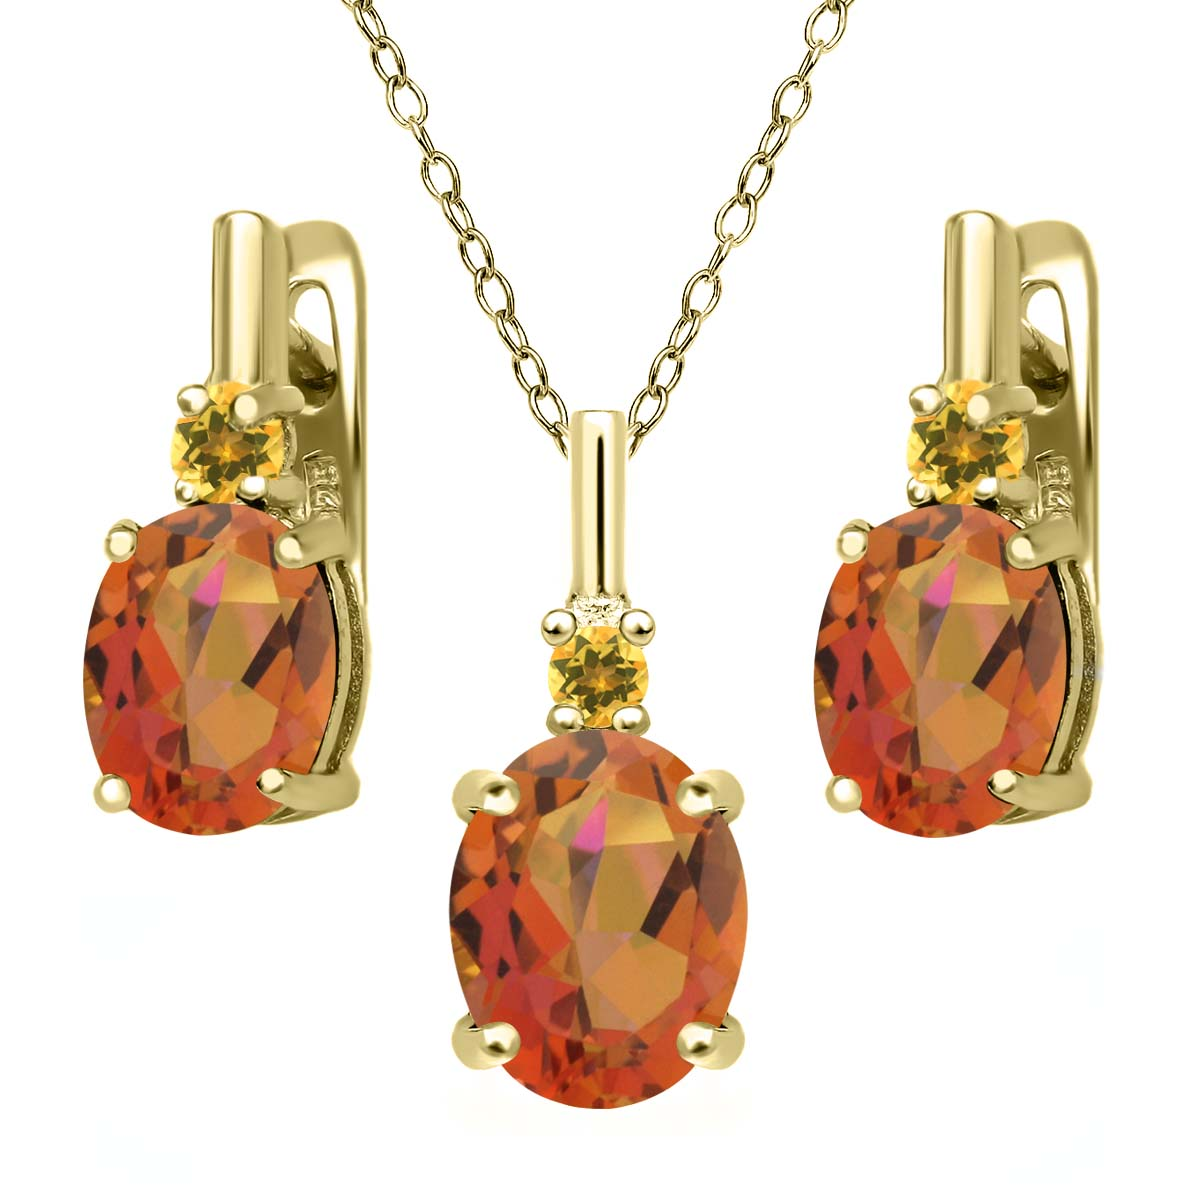 Oval Mystic Quartz Simulated Citrine 18K Gold Plated Silver Pendant Earrings Set by